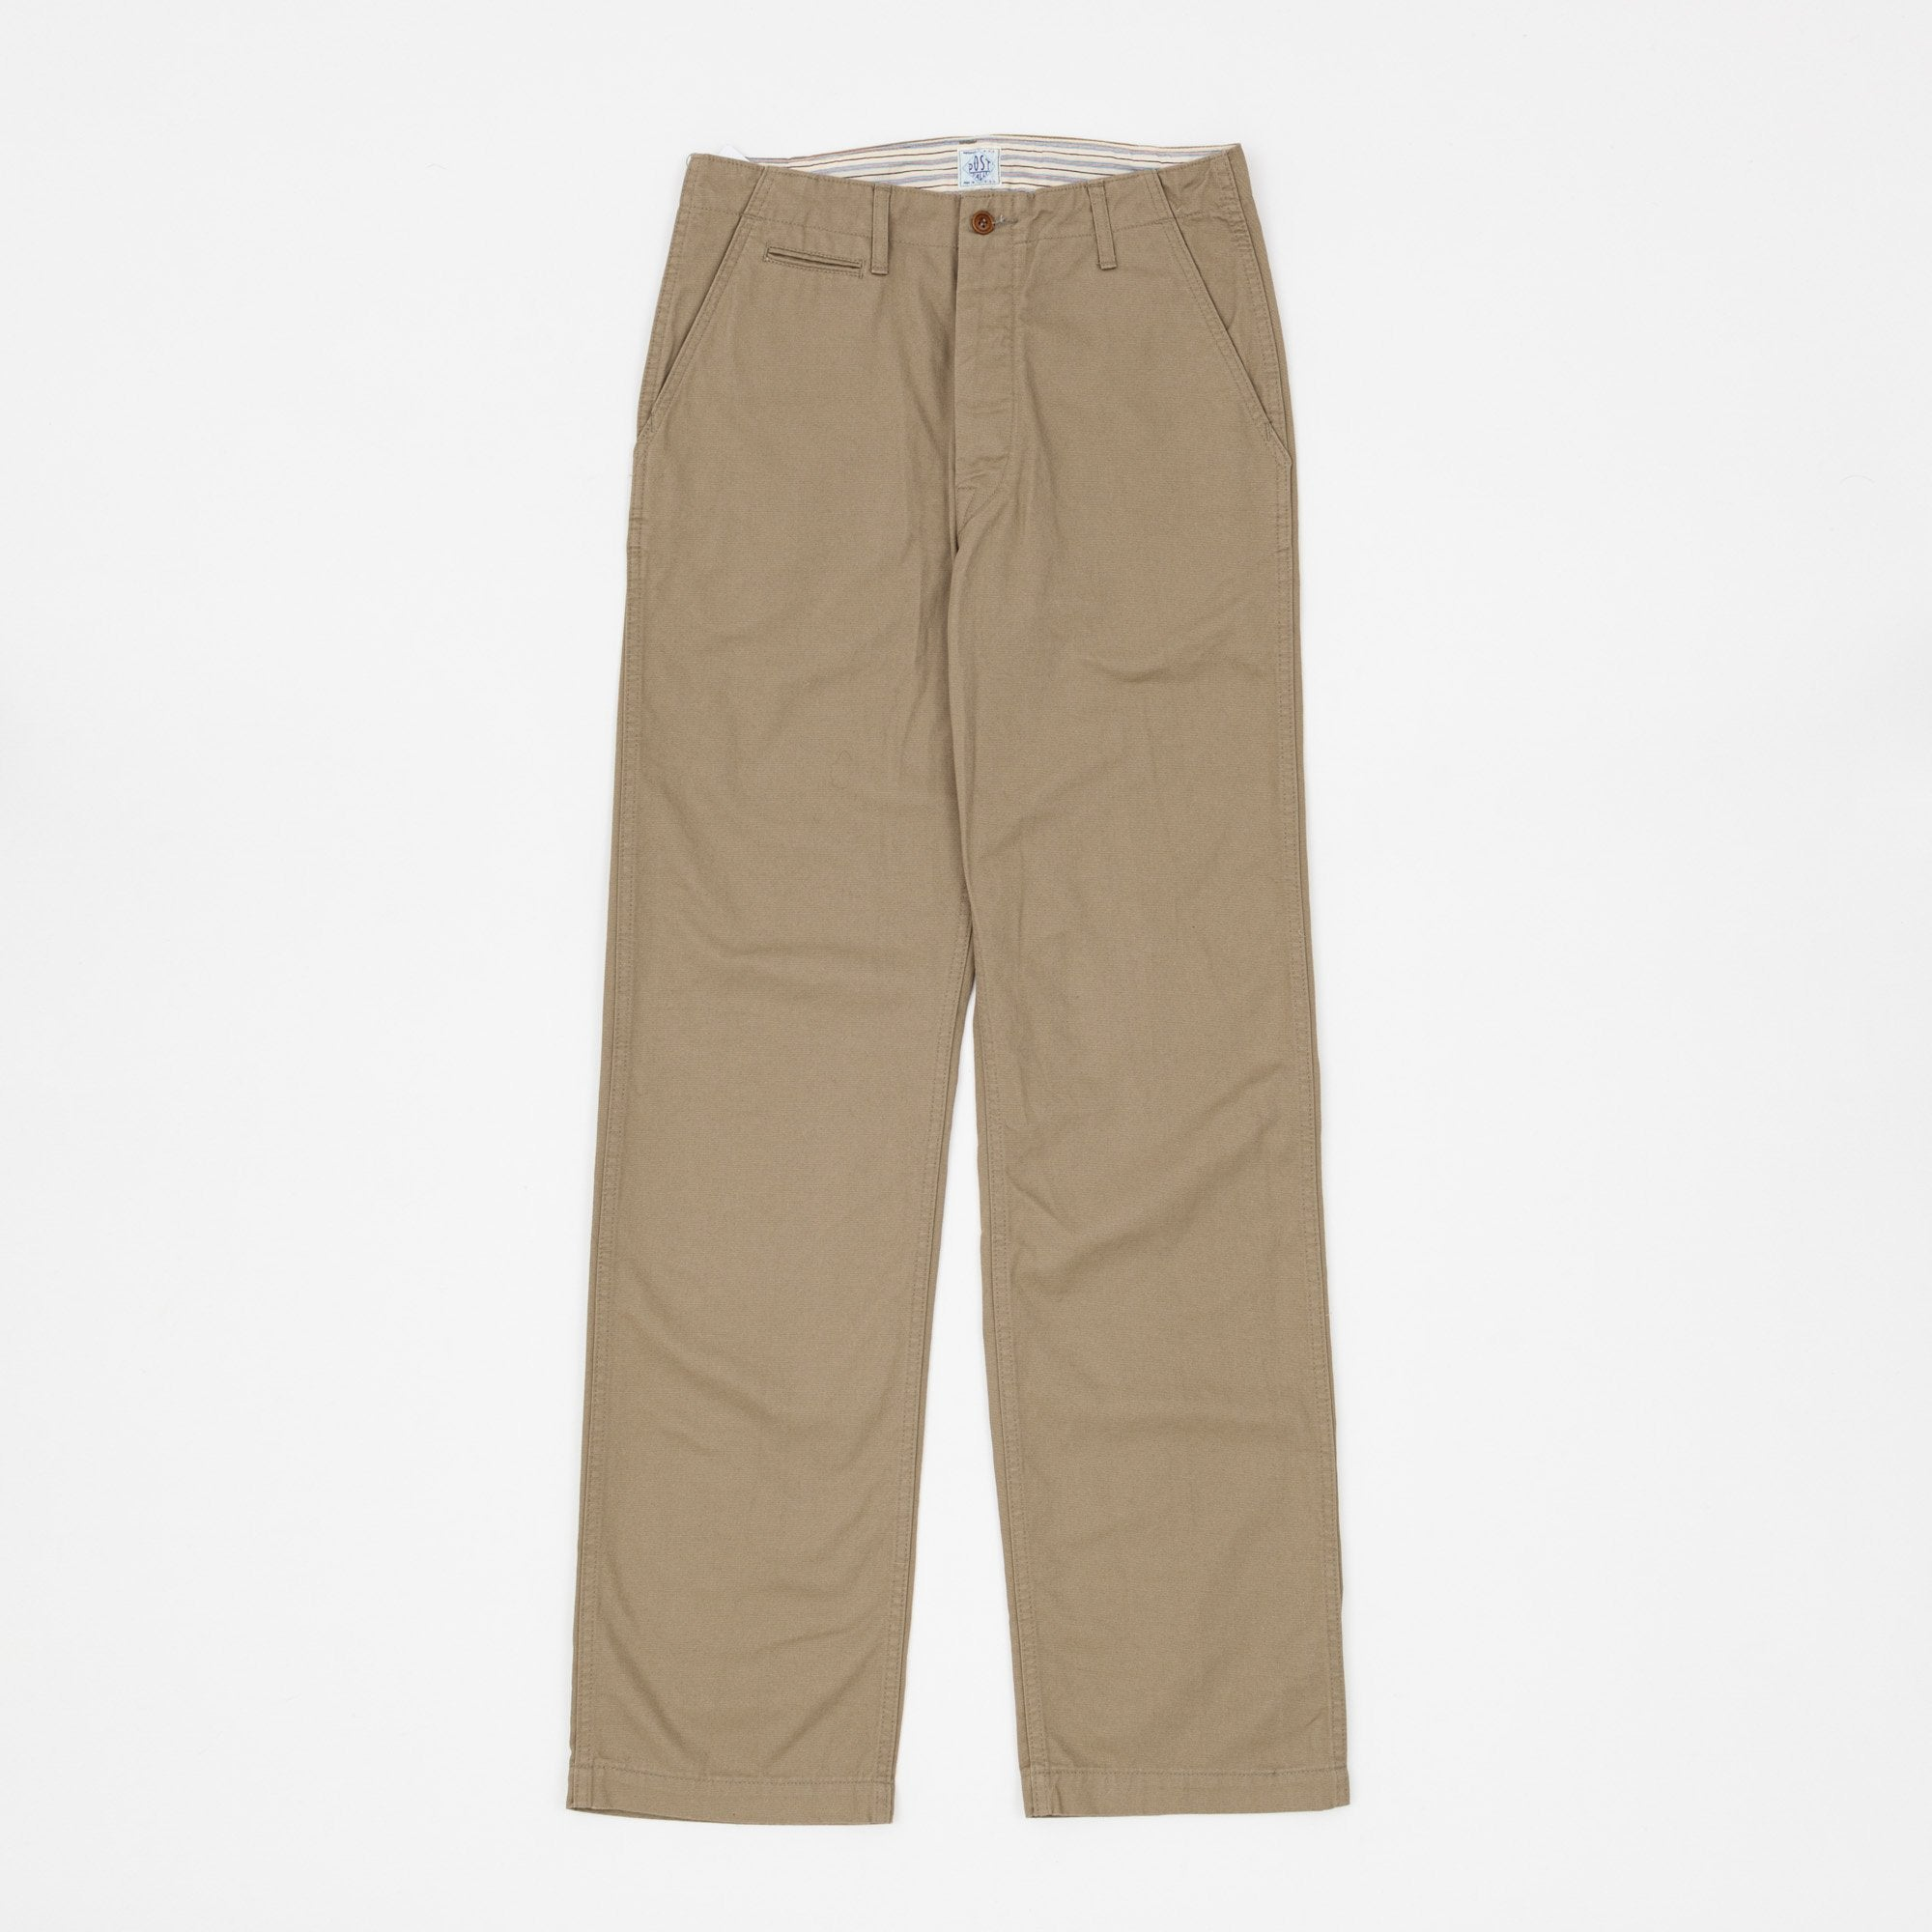 Post Overalls Classic Twill Chino